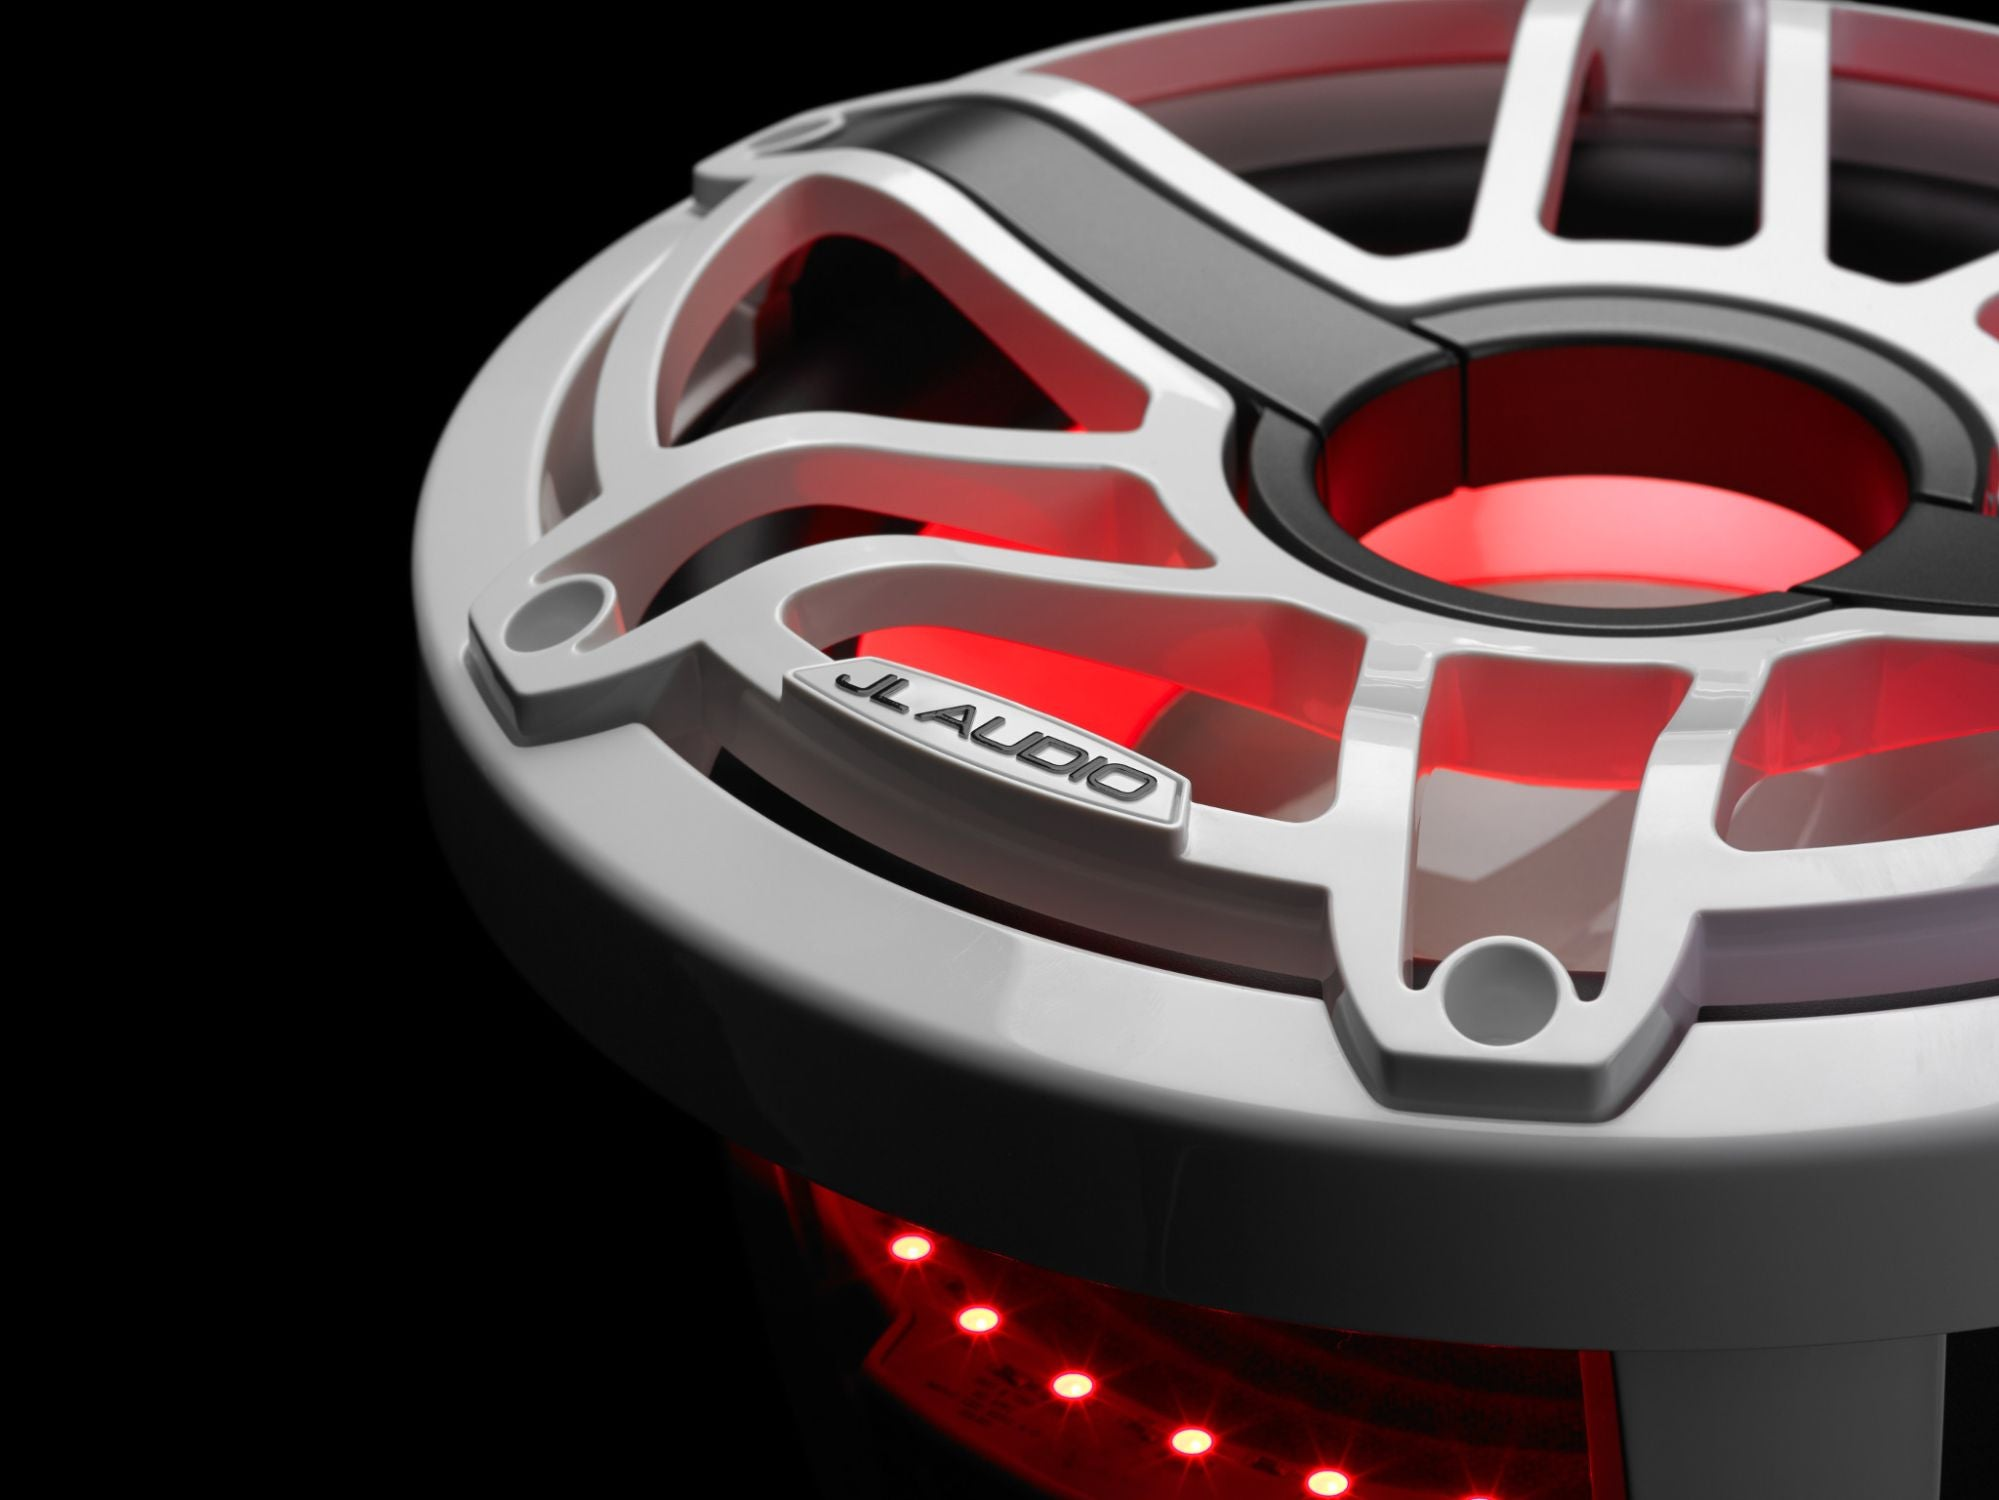 Detail of M6-10IB-S-GwGw-i-4 Subwoofer Lit with Red